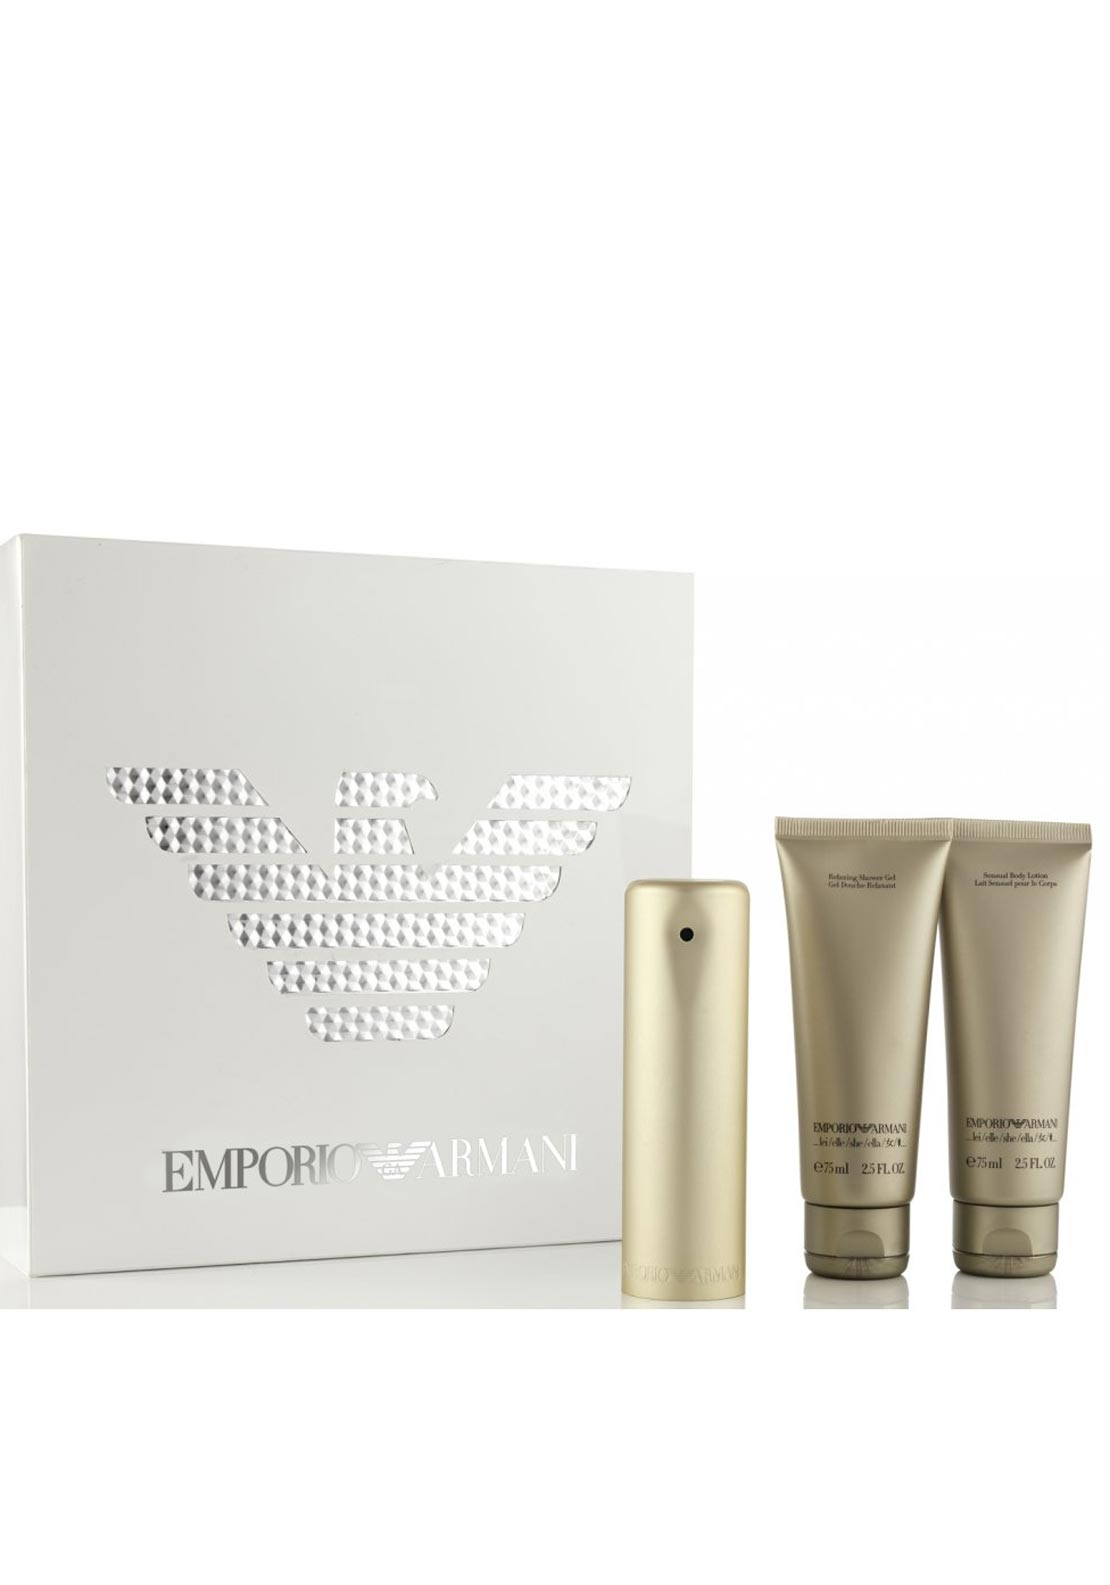 Emporio Armani She Eau de Parfum Womens Gift Set, 50ml